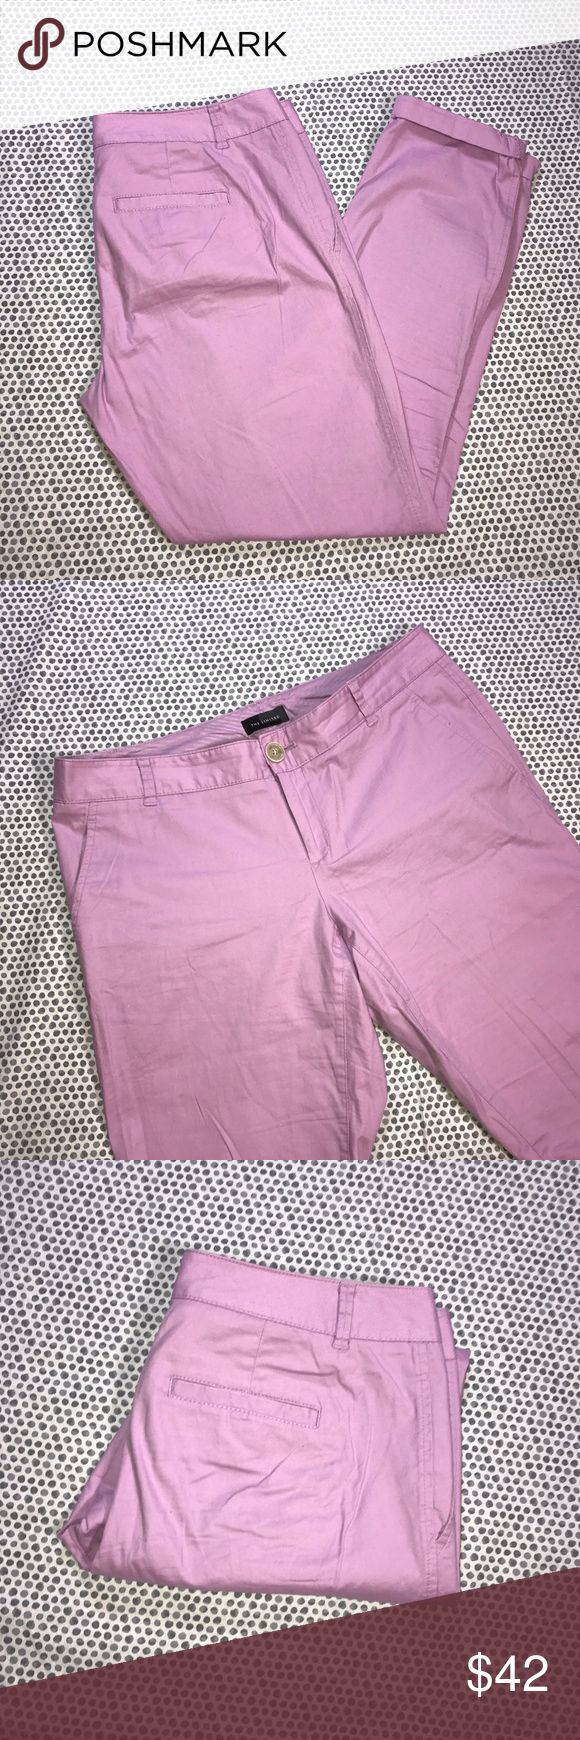 The Limited Light Purple Skinny Dress Pants * The Limited Light Purple Skinny Dress Pants * Size 4 * Made of 97% cotton & 3% spandex.  * Pre-owned, but in excellent used condition. No holes, stains or pilling.  * Measurements: Waist laying flat is 15 1/2 inches. Length is 36 1/2 inches. Inseam is 29 1/2 inches. Rise is 8 inches. The Limited Pants Skinny